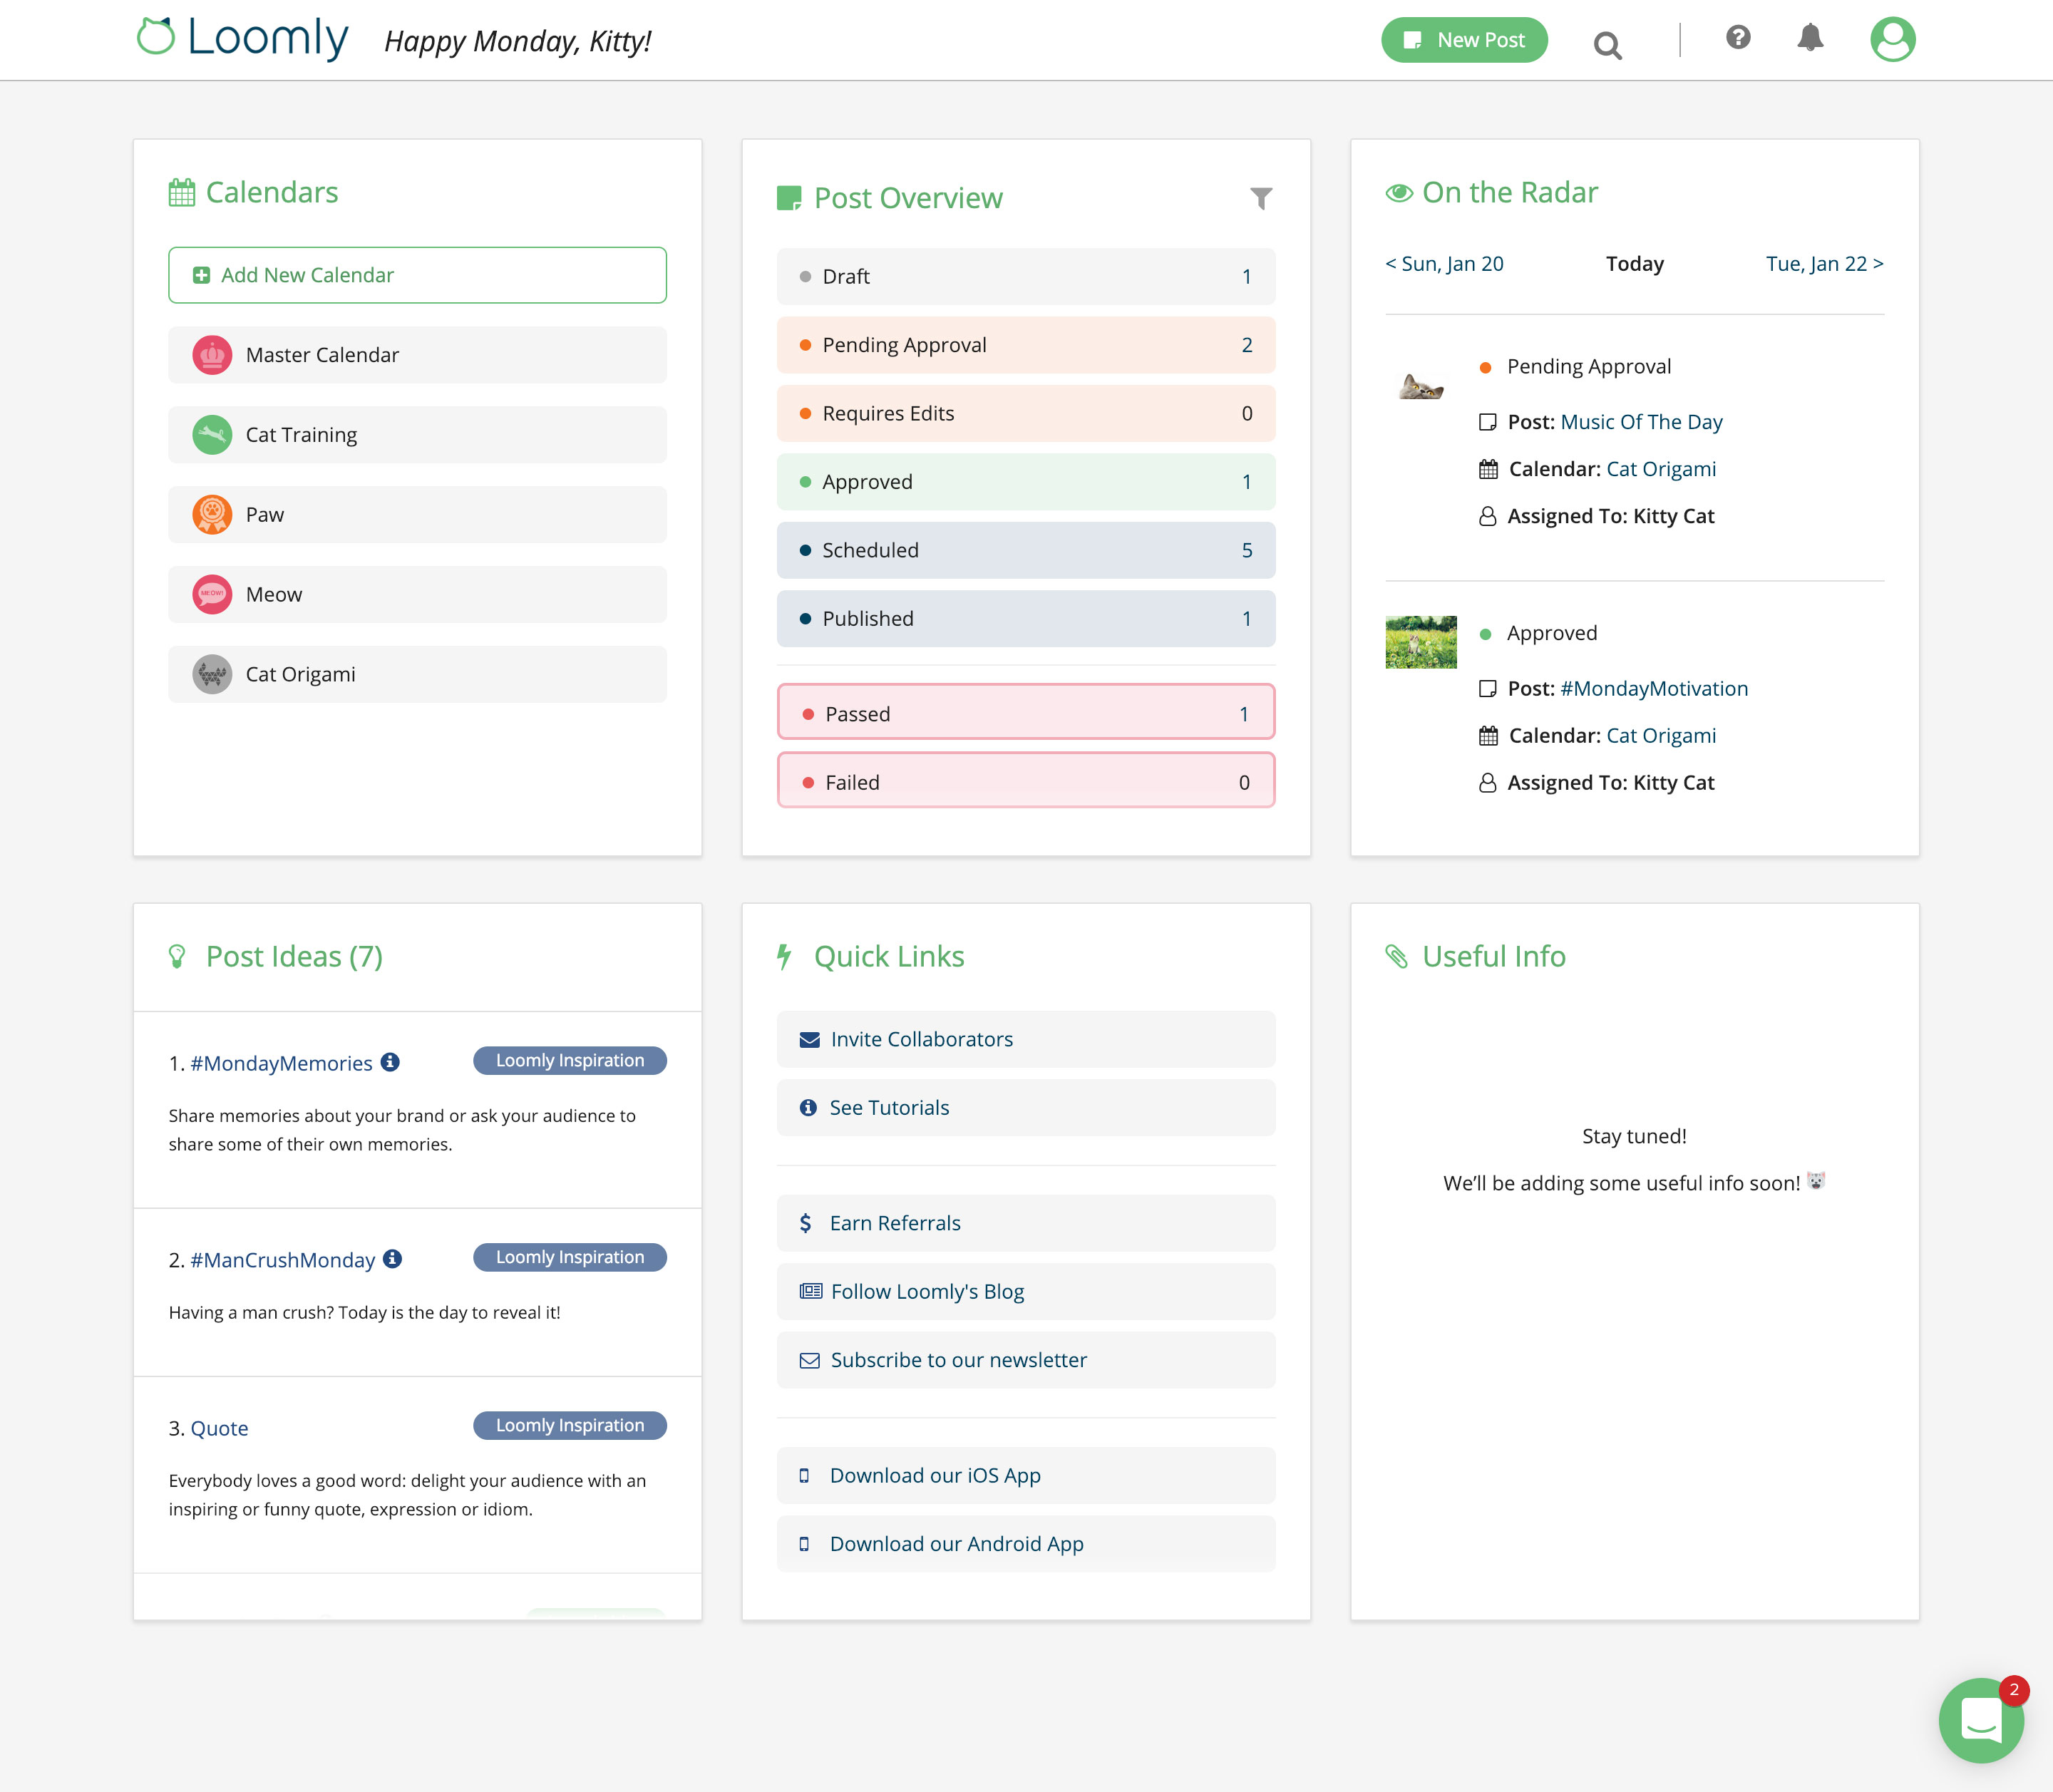 Loomly 3.0 Dashboard Screenshot